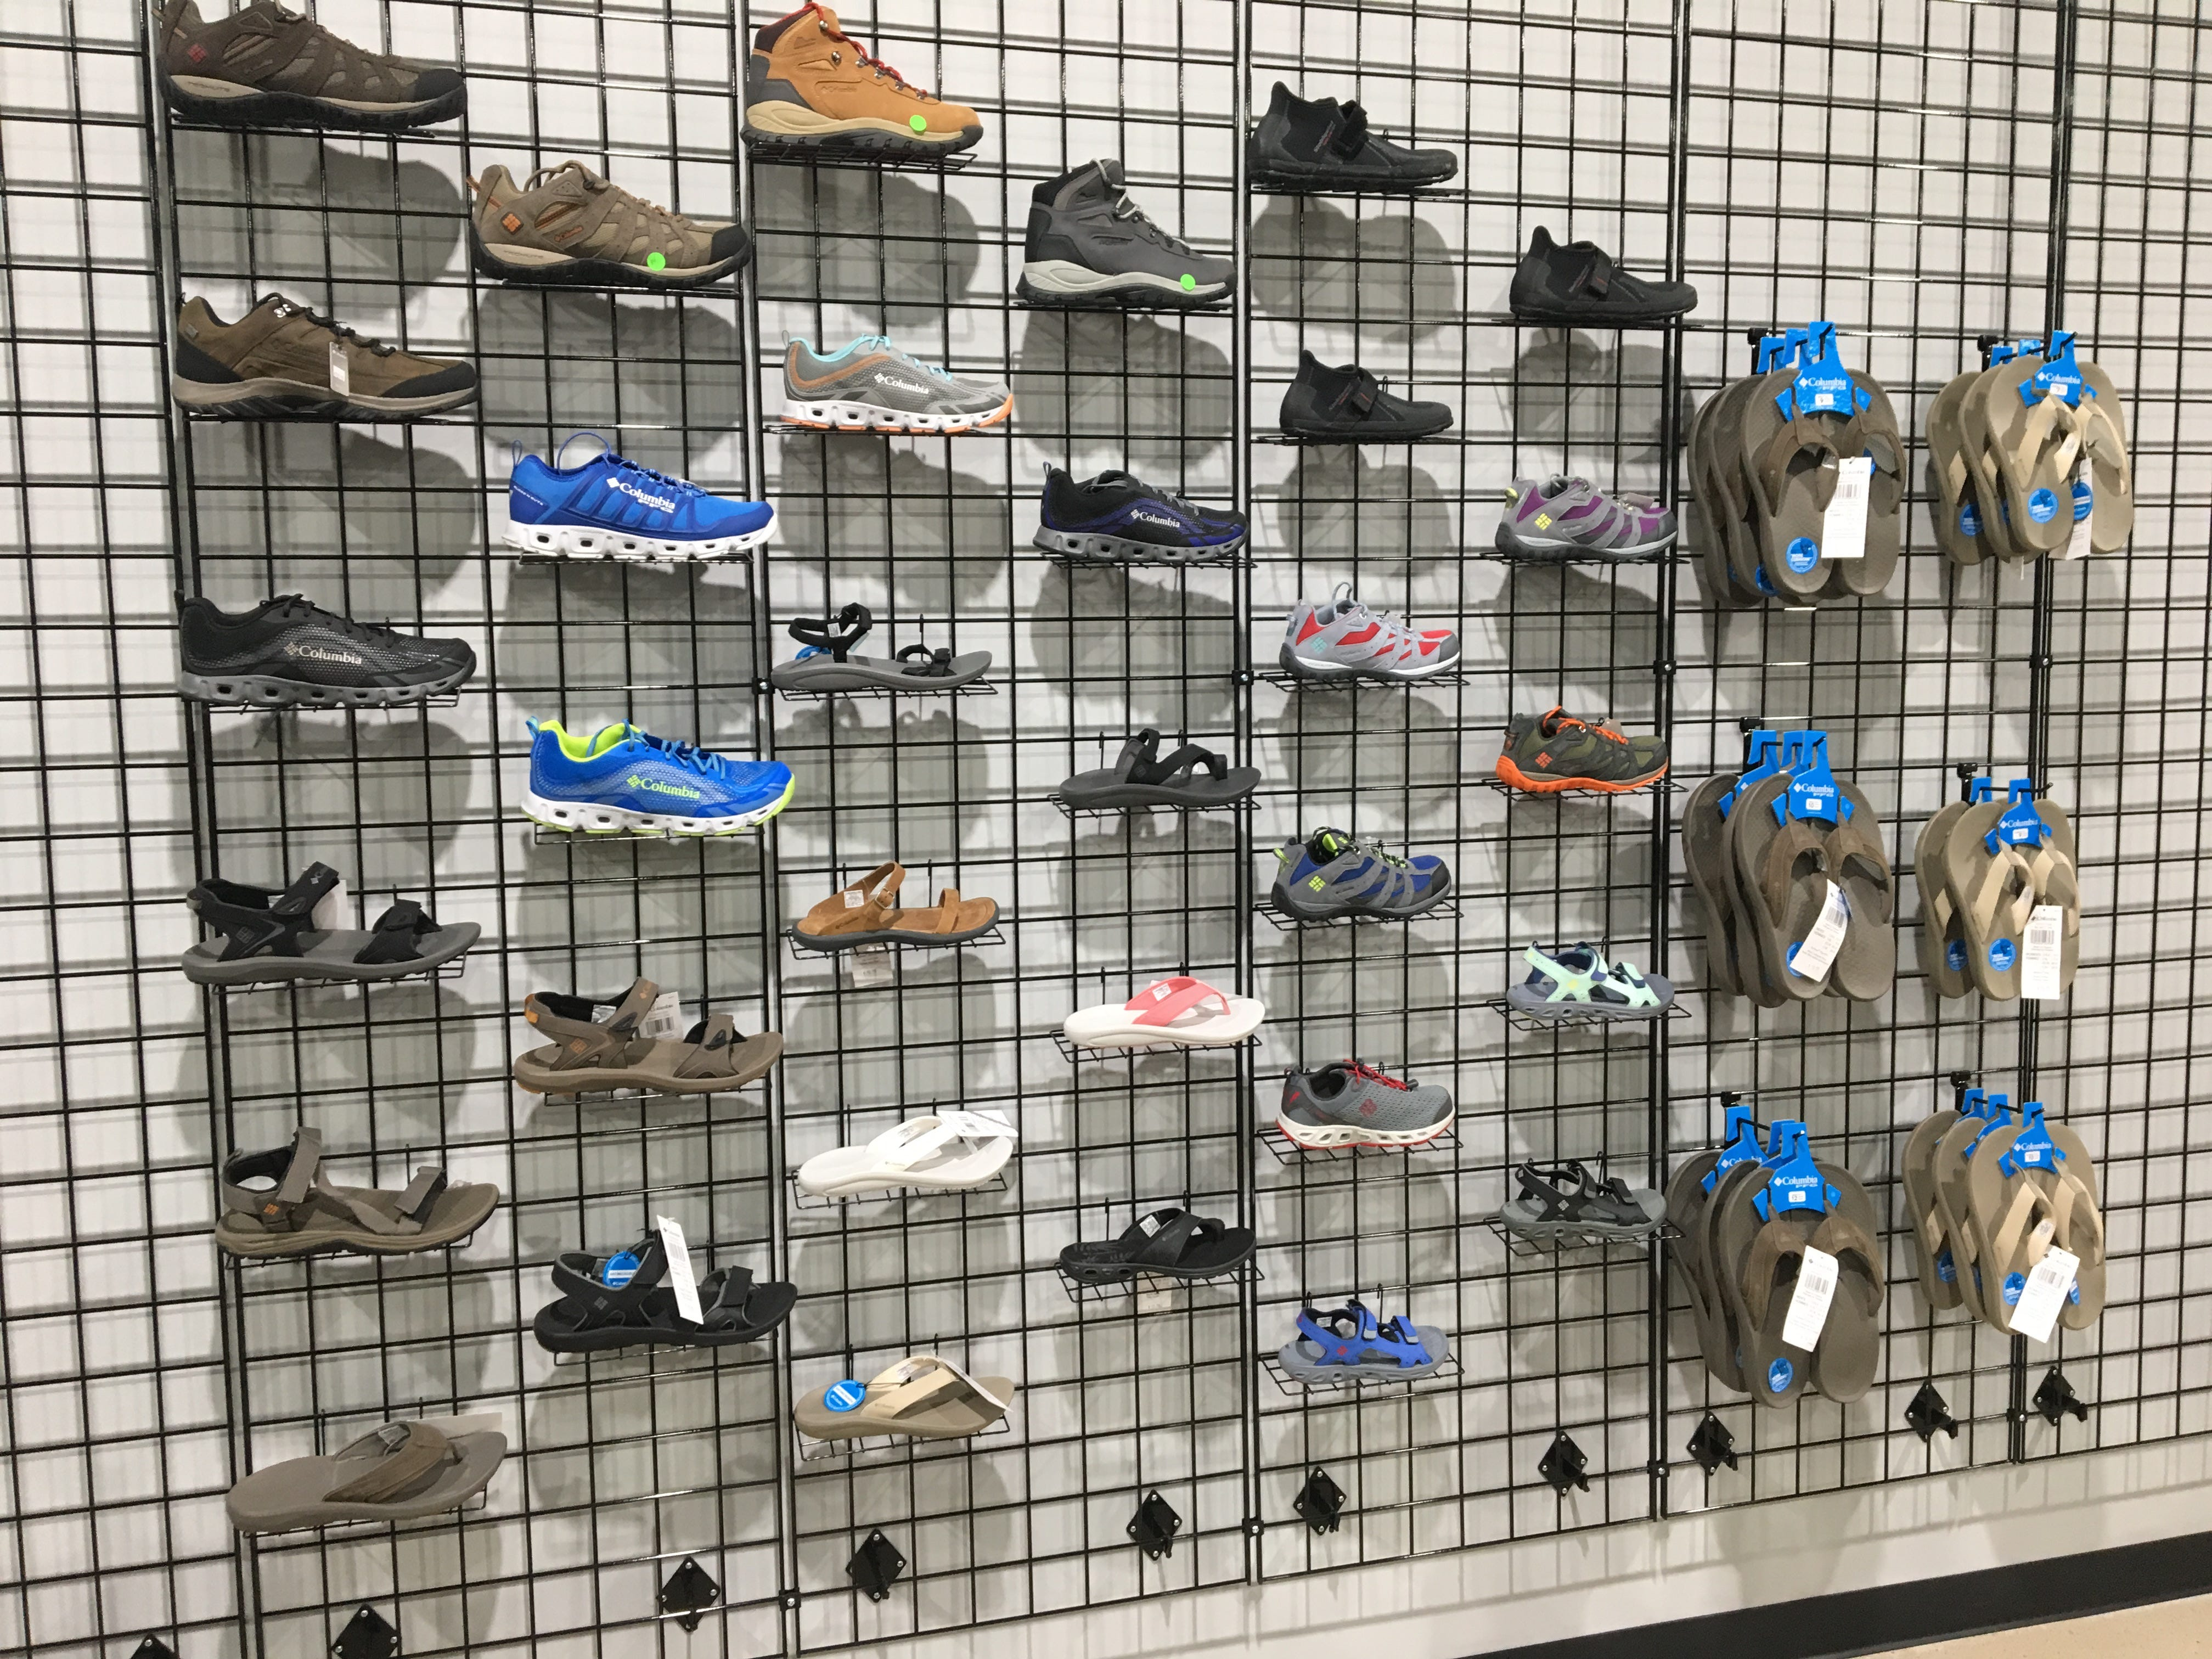 You'll find a selection of Columbia footwear at Hook 1 outfitters in Murfreesboro.